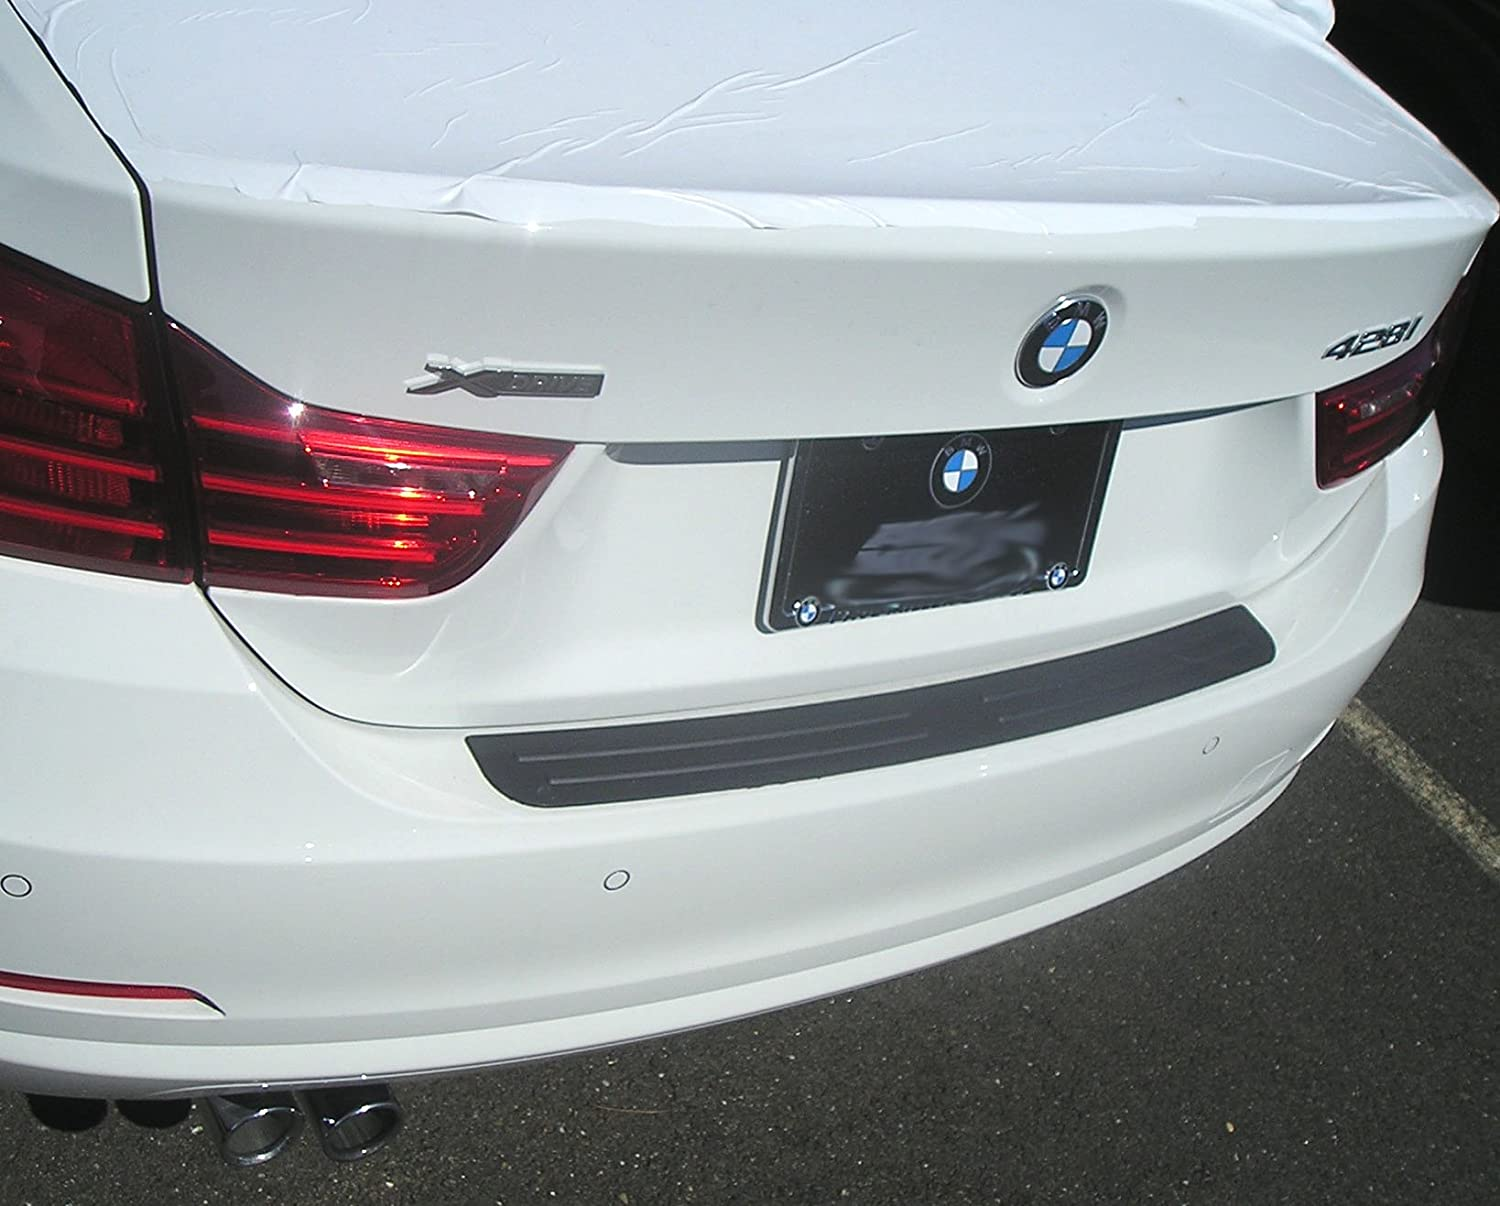 Rear Bumper Protector Fits 2014-2018 4 Series Coupe BMW